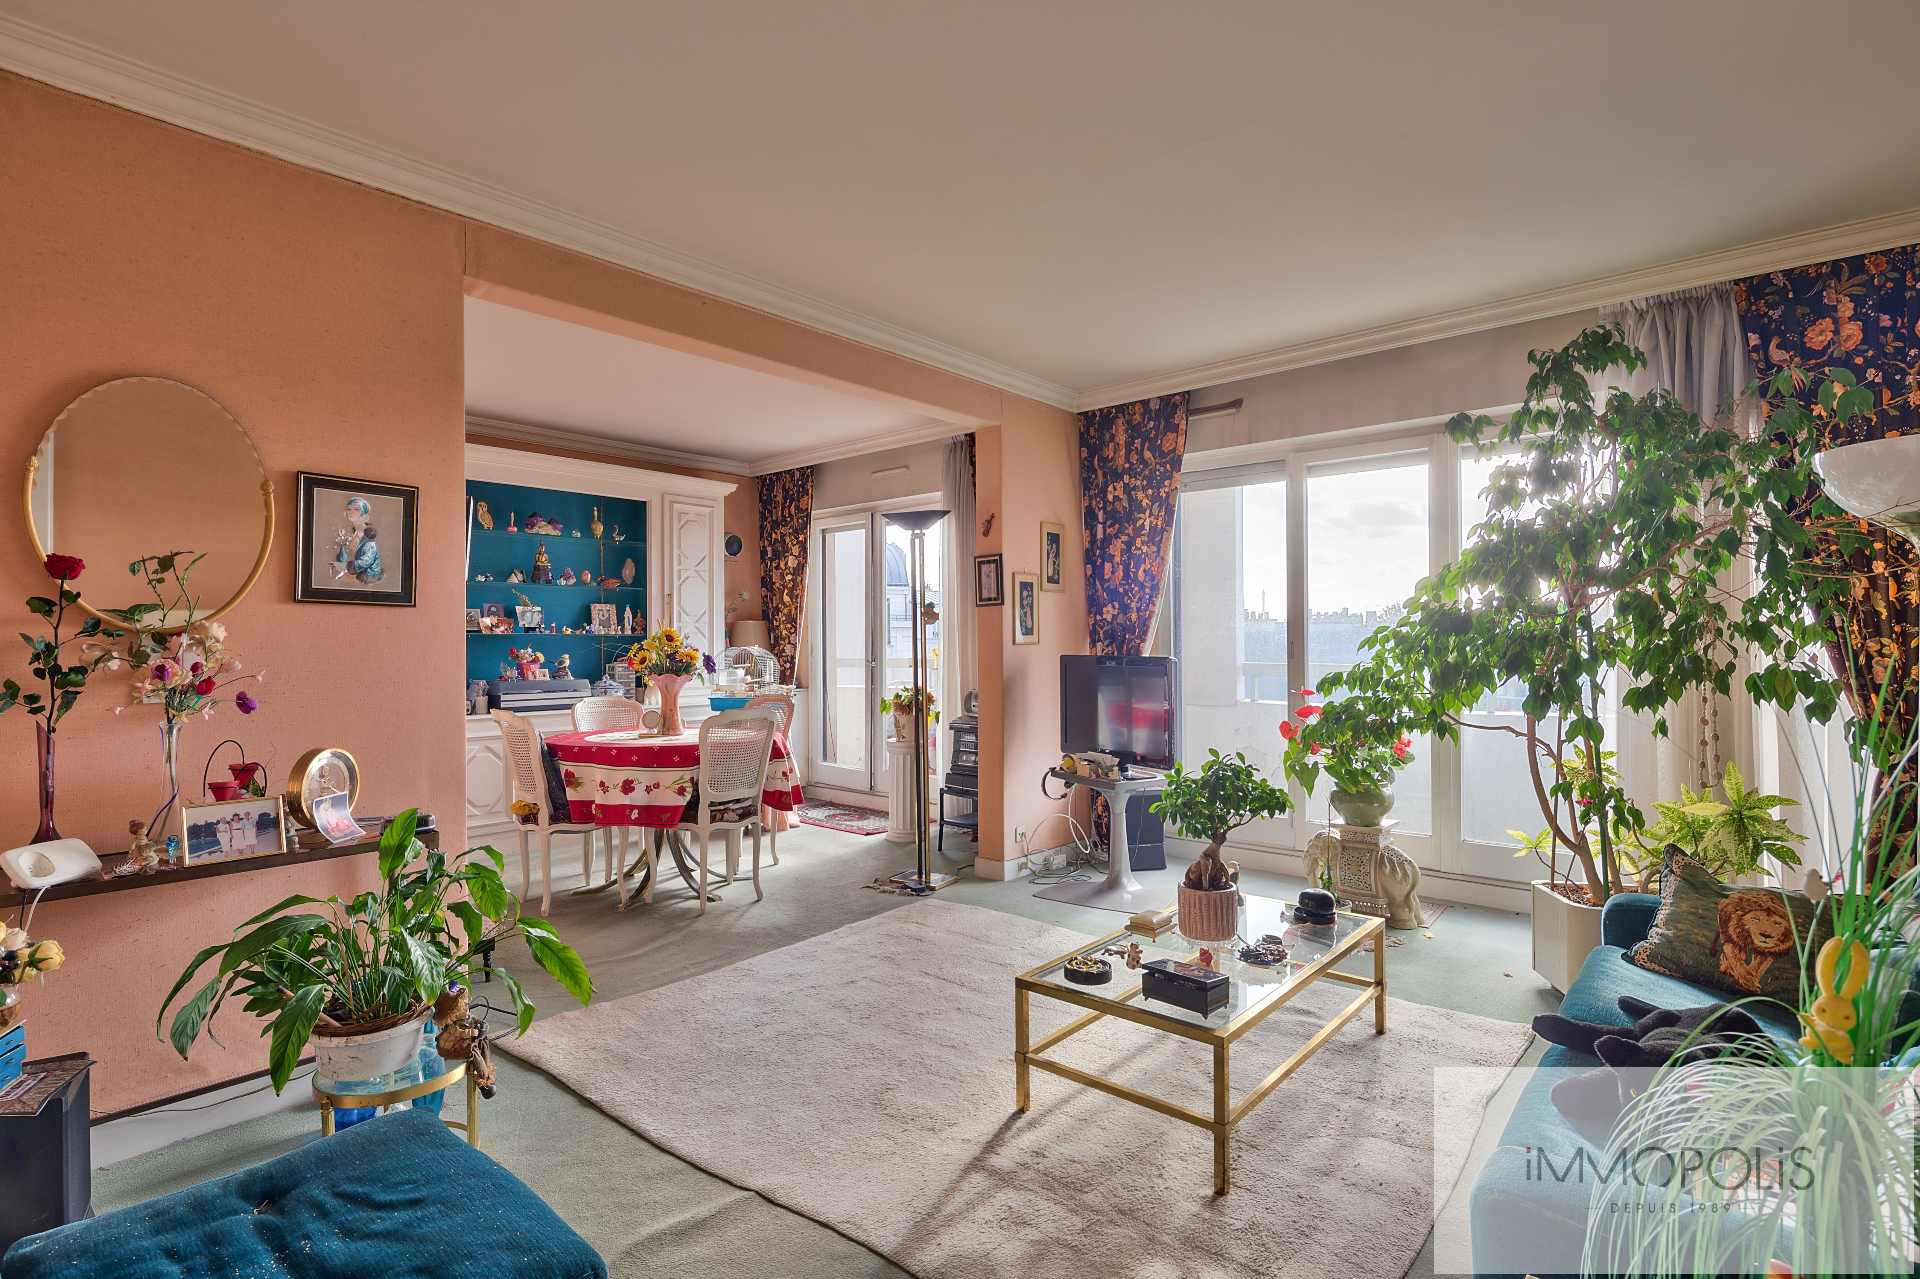 BARE PROPERTY – 4 rooms with balcony terrace and open view on gardens and the Eiffel Tower: sold occupied by usufructuary of 90 years 1